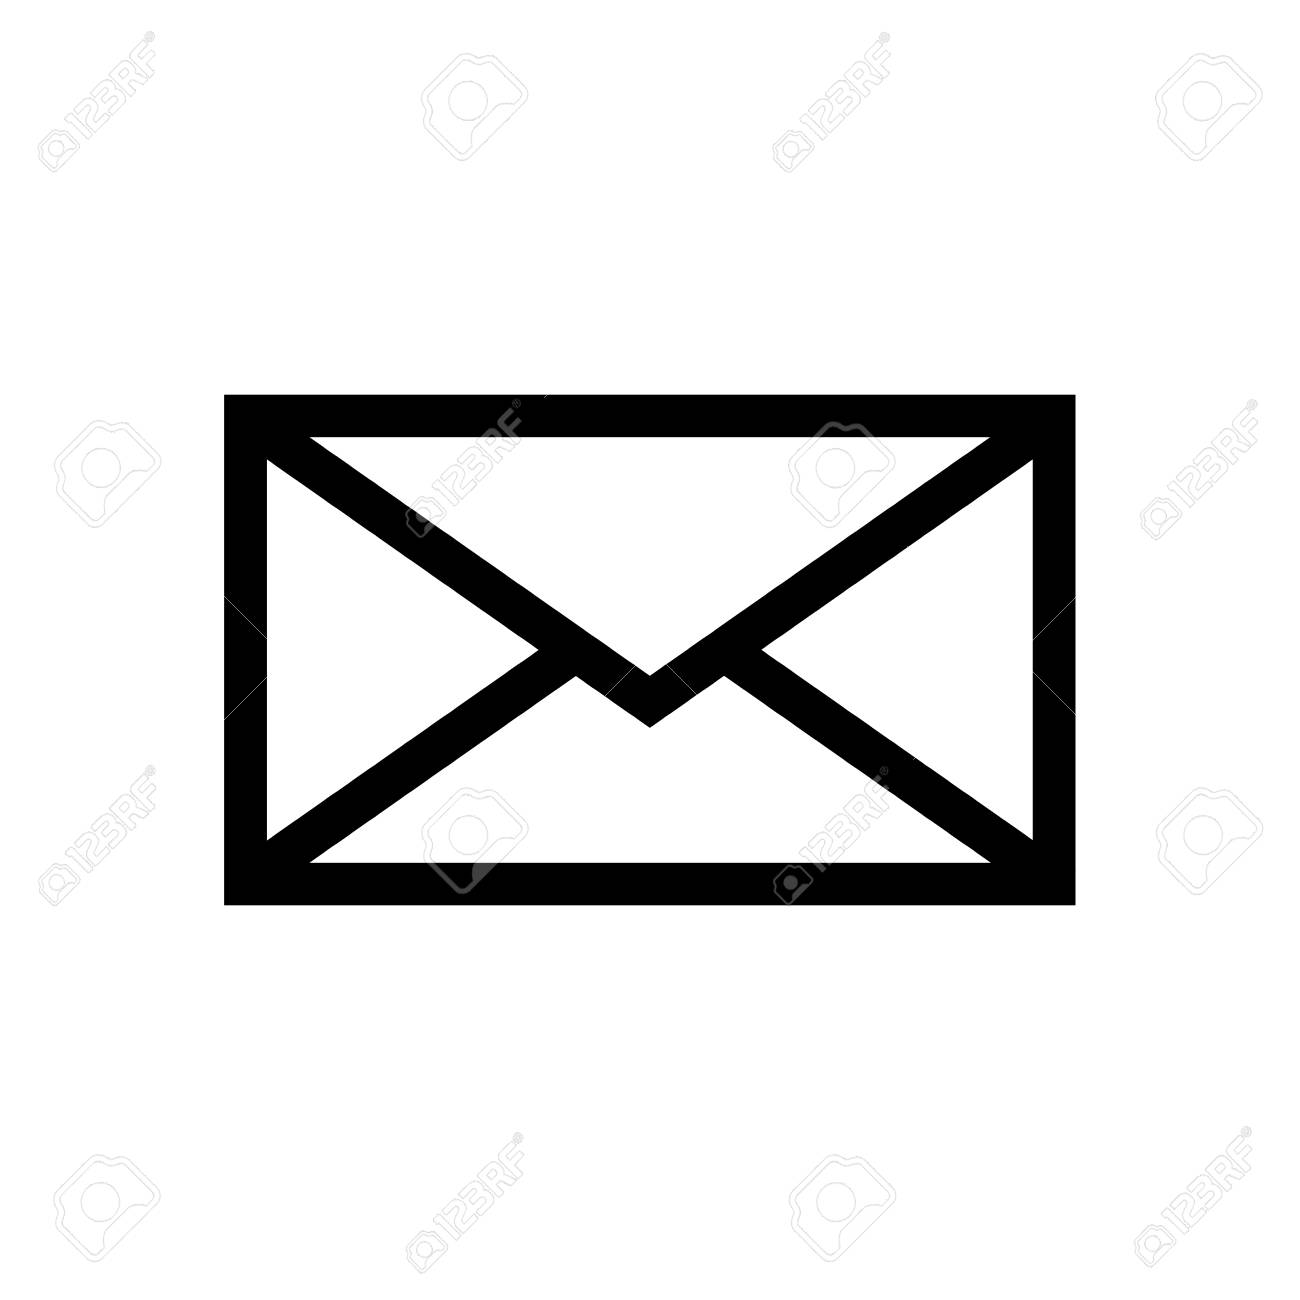 email symbol letter icon vector flat design royalty free rh 123rf com Phone Icon Vector email icon vector free